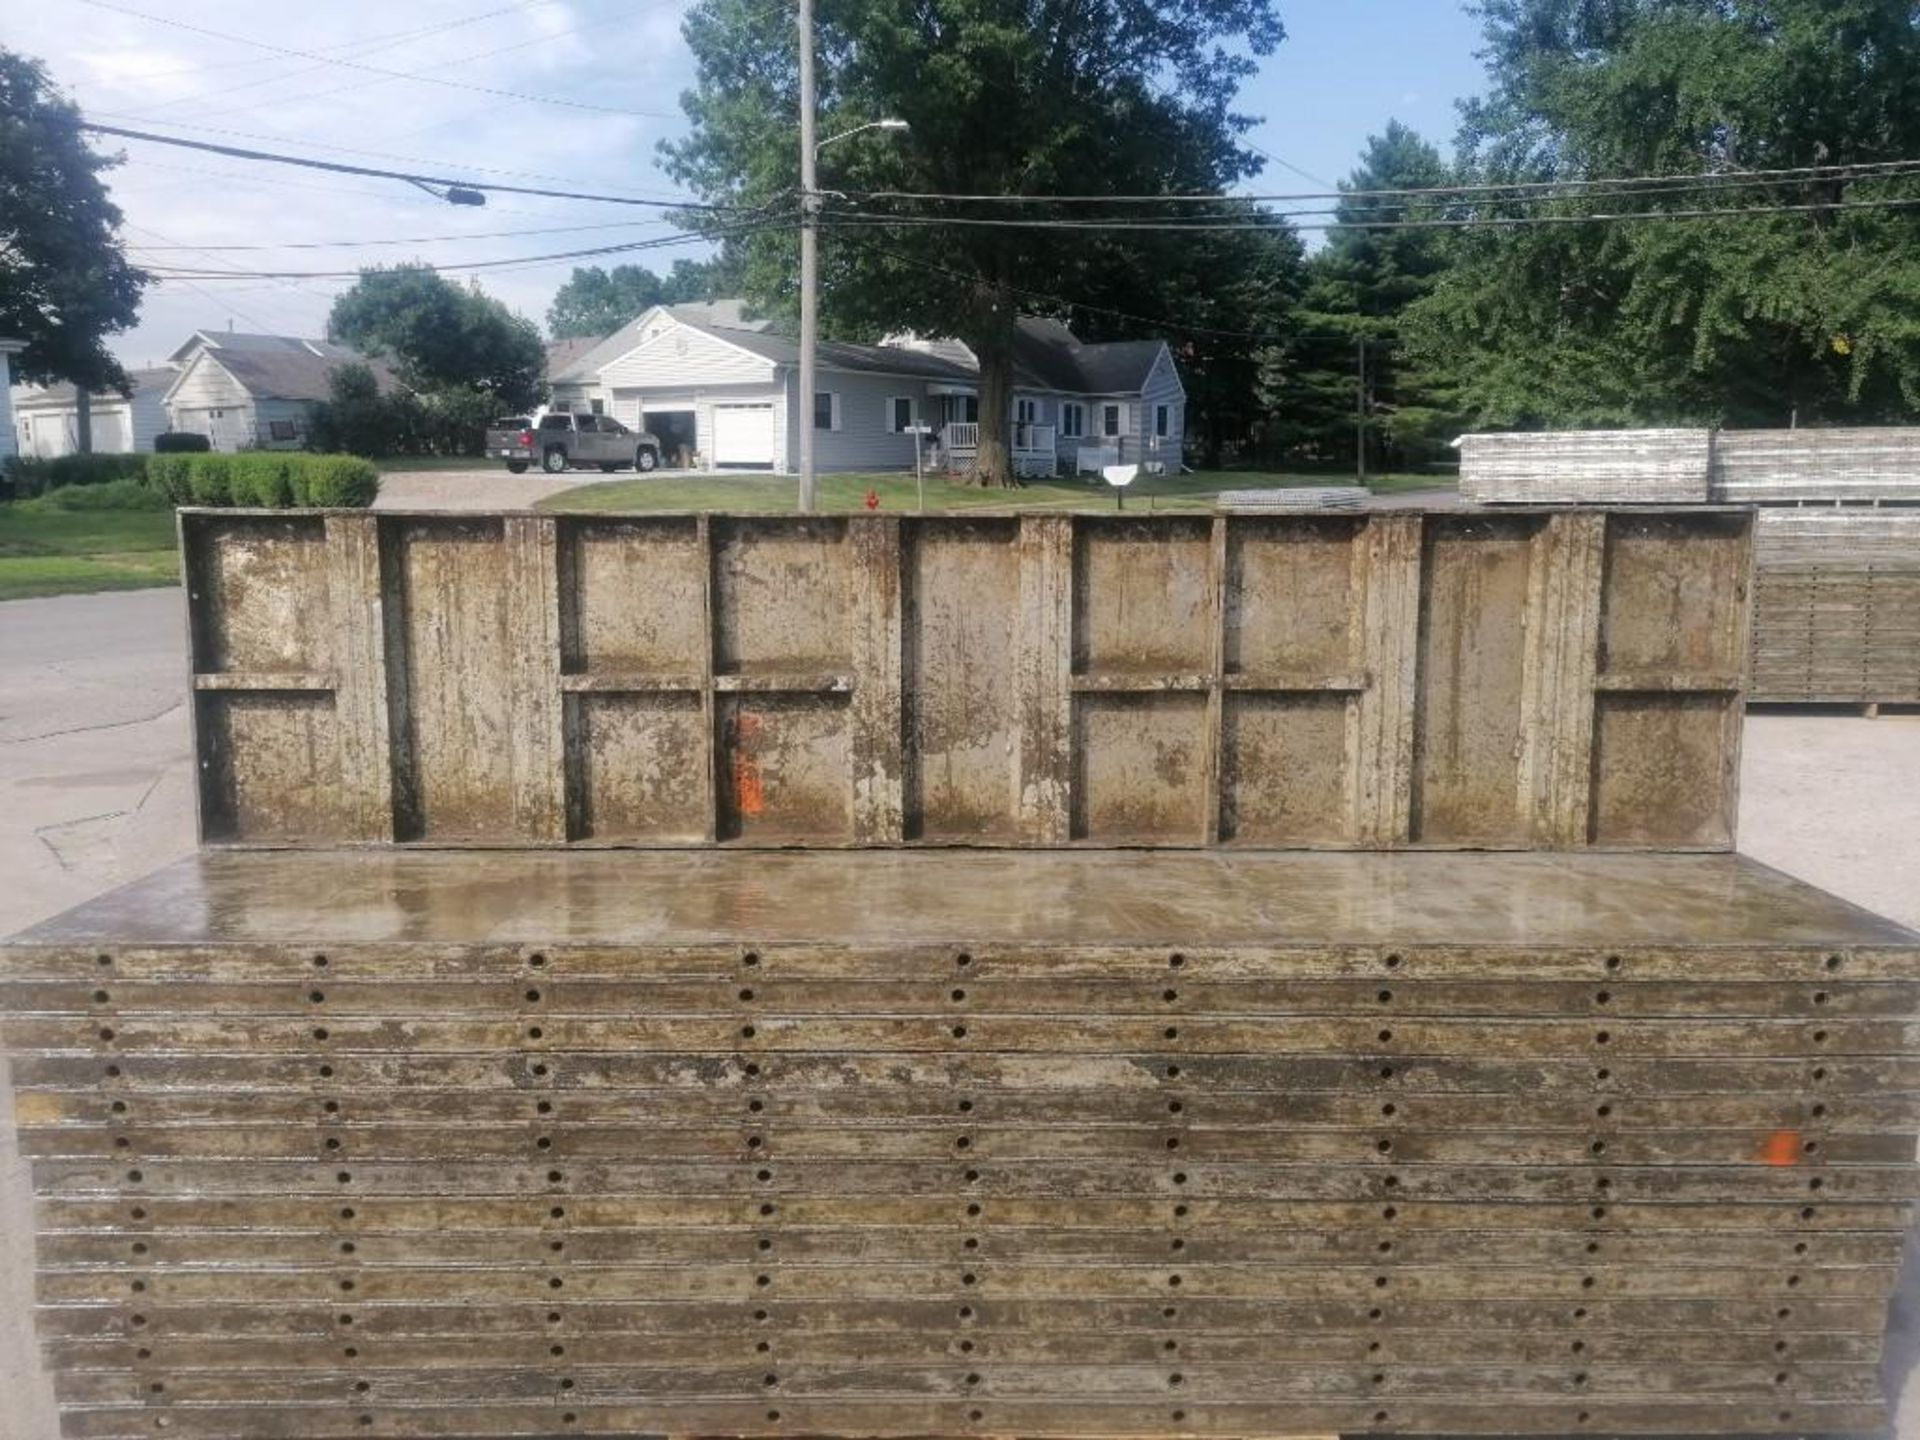 Lot 136 - (30) 2' x 9' Wall-Ties Aluminum Concrete Forms, Laydowns, Smooth 6-12 Hole Pattern. Located at 301 E